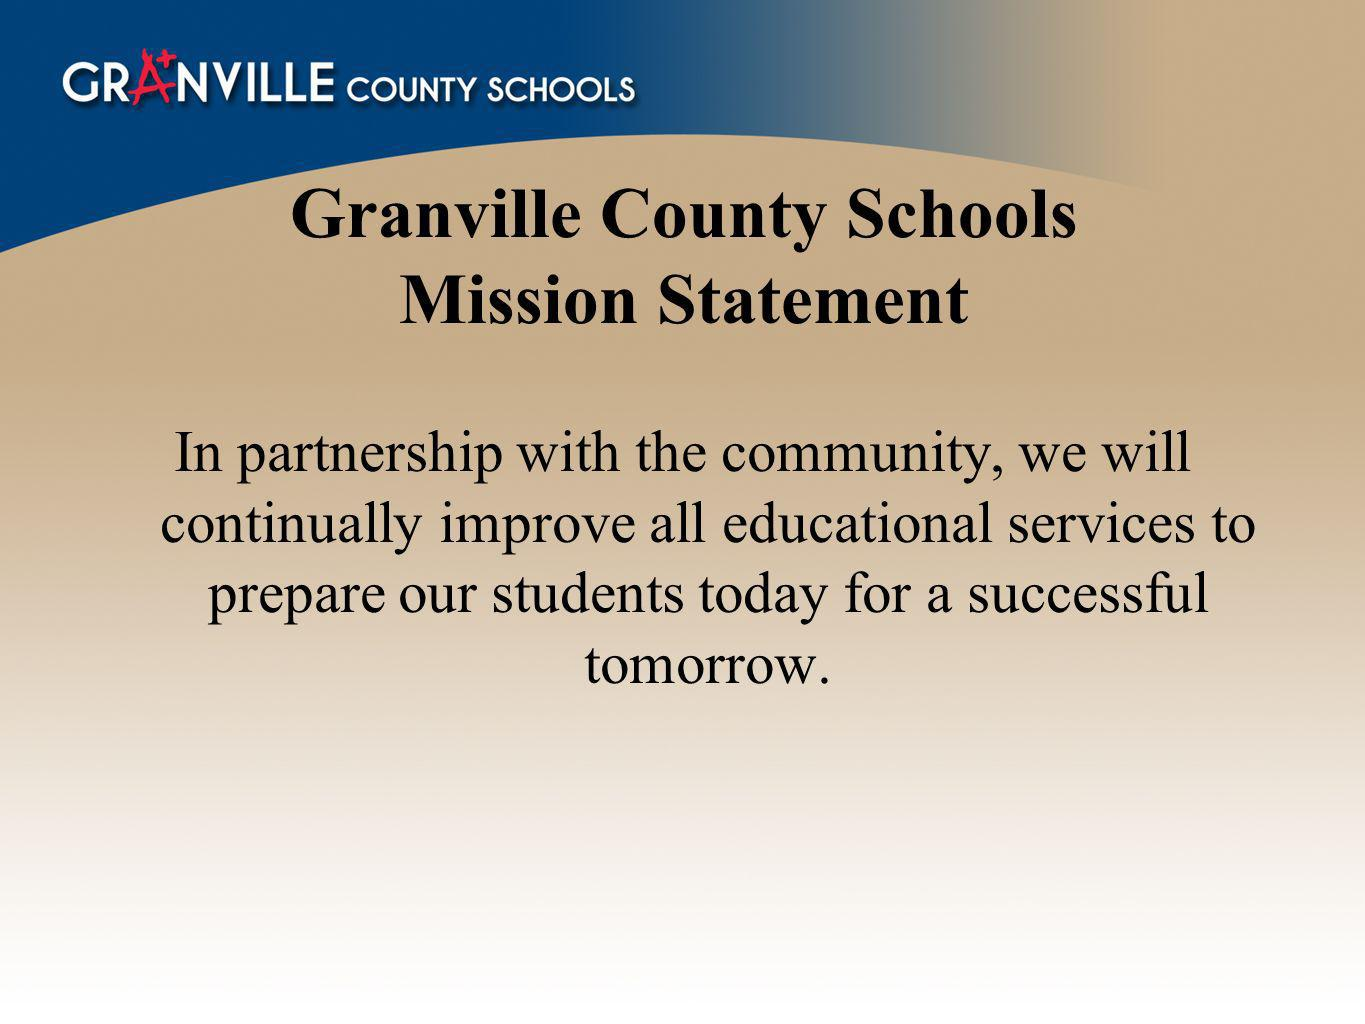 Granville County Schools Mission Statement